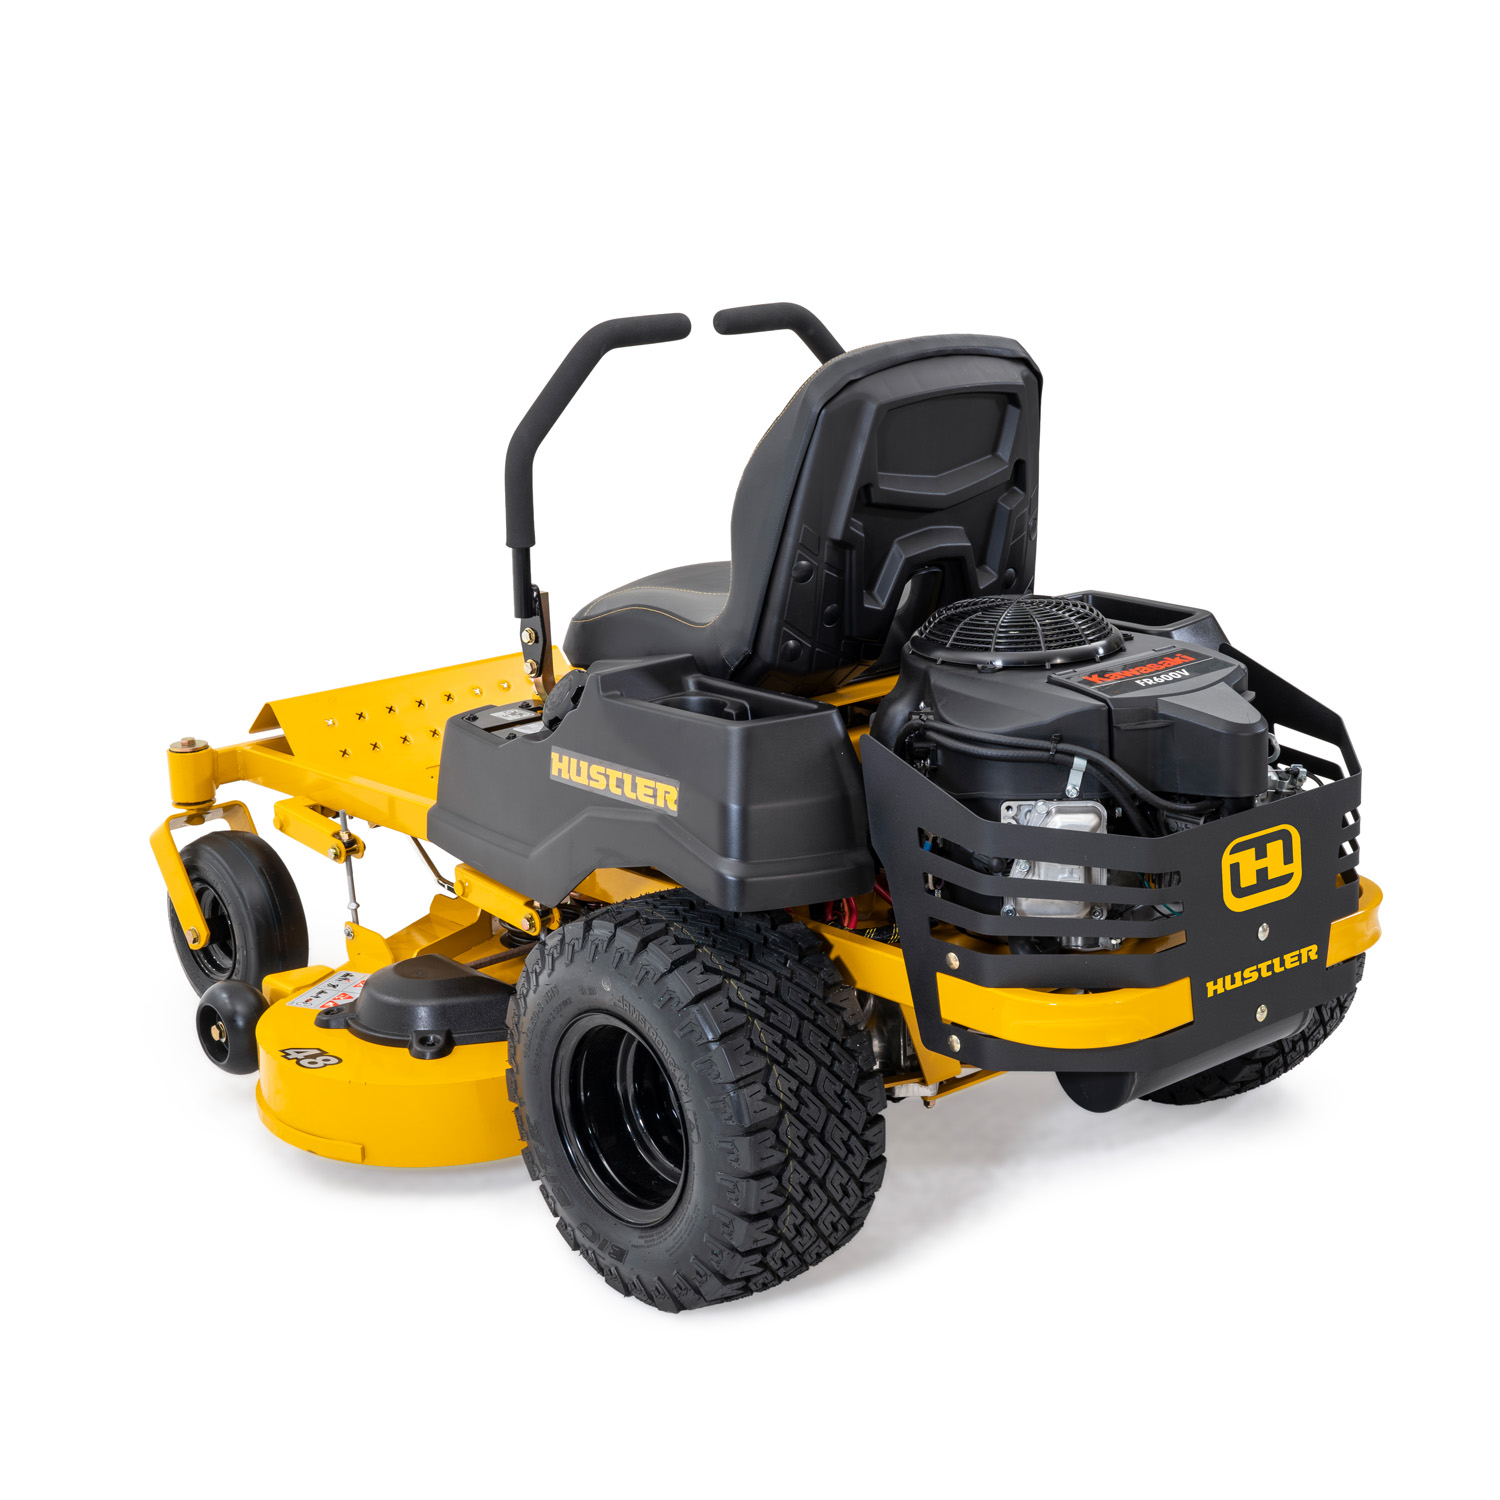 Image of the rear three quarters of a yellow mower showing the engine